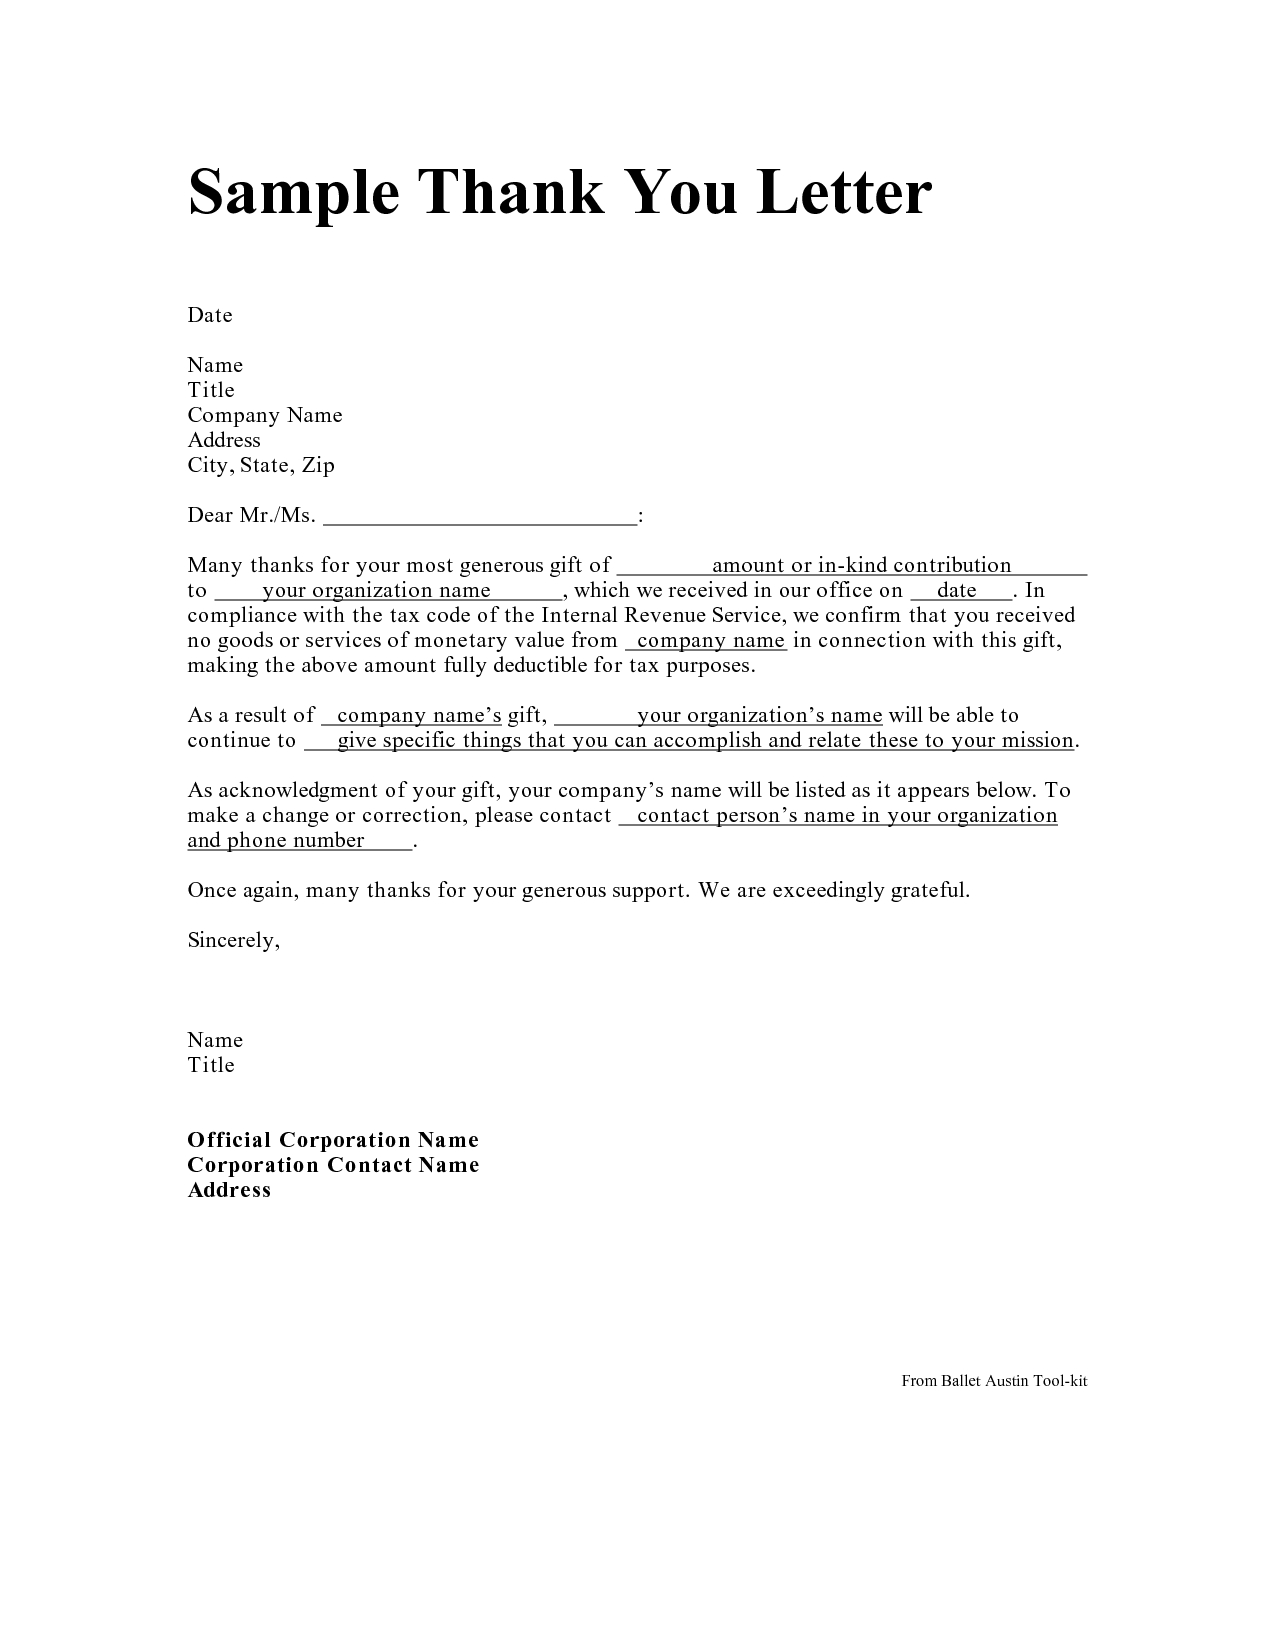 Mission Trip Letter Template - Personal Thank You Letter Personal Thank You Letter Samples